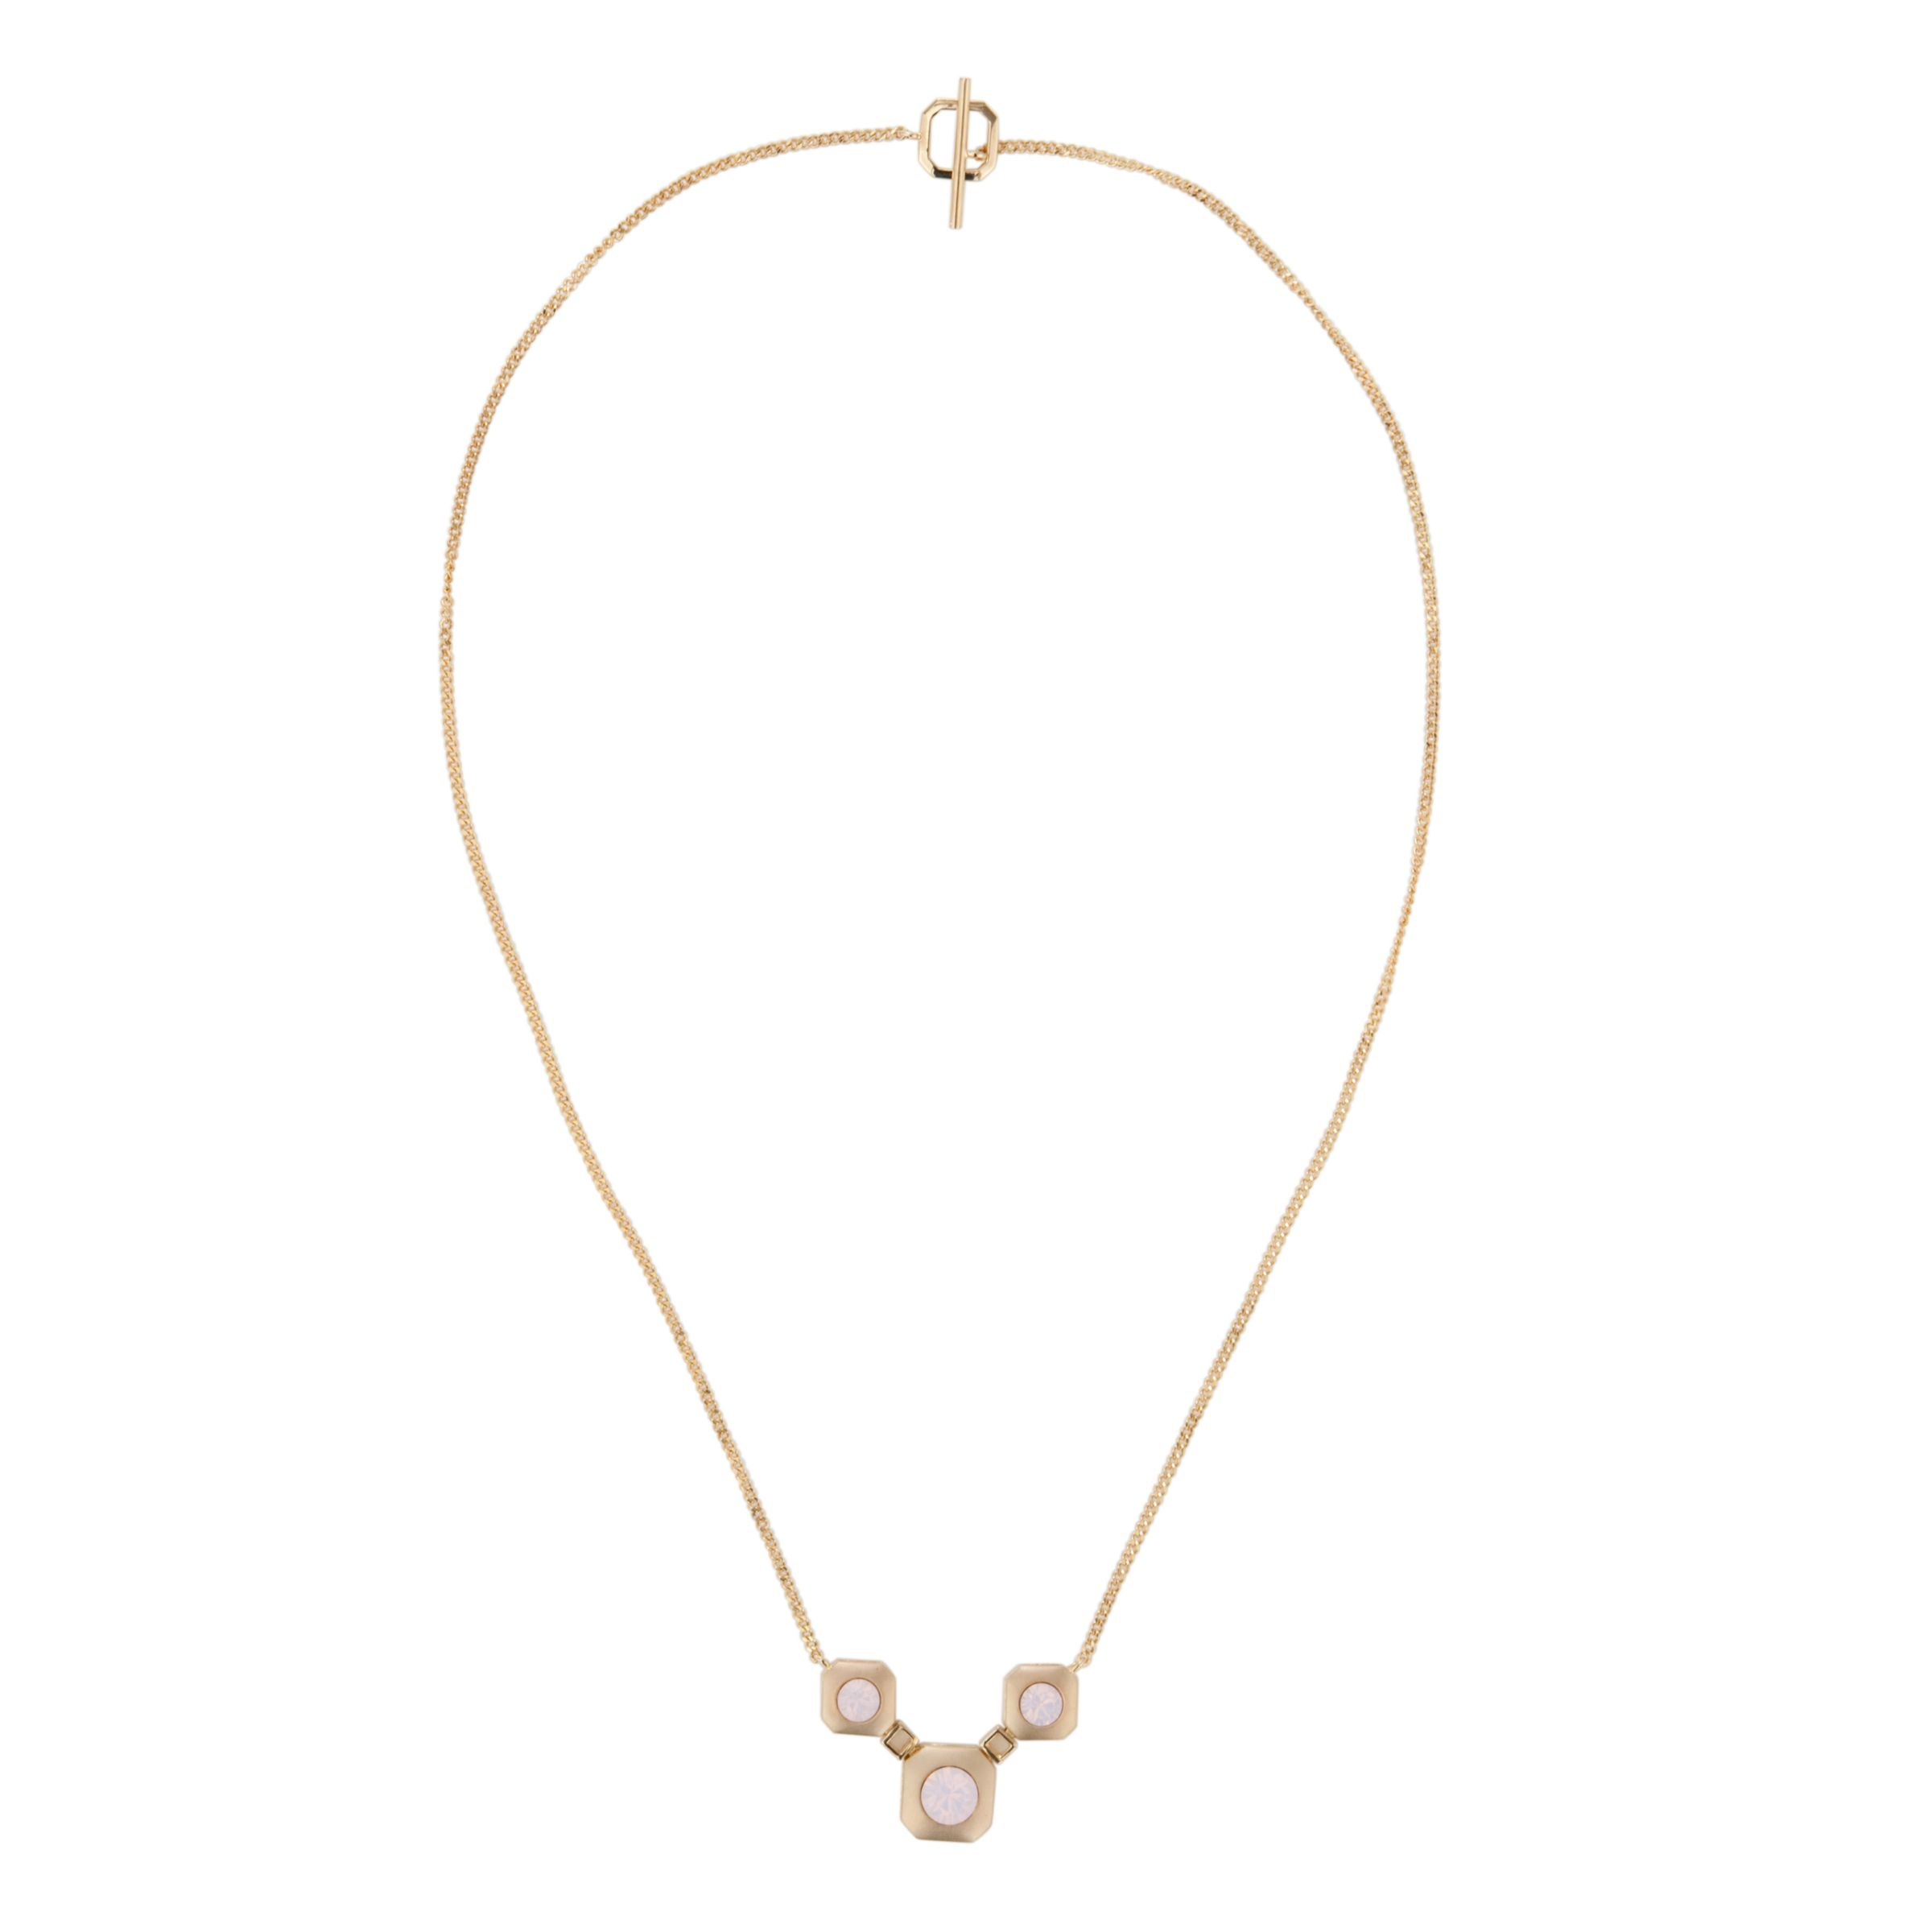 Inara Gold Plated 3 Pink Crystal Pendant Necklace